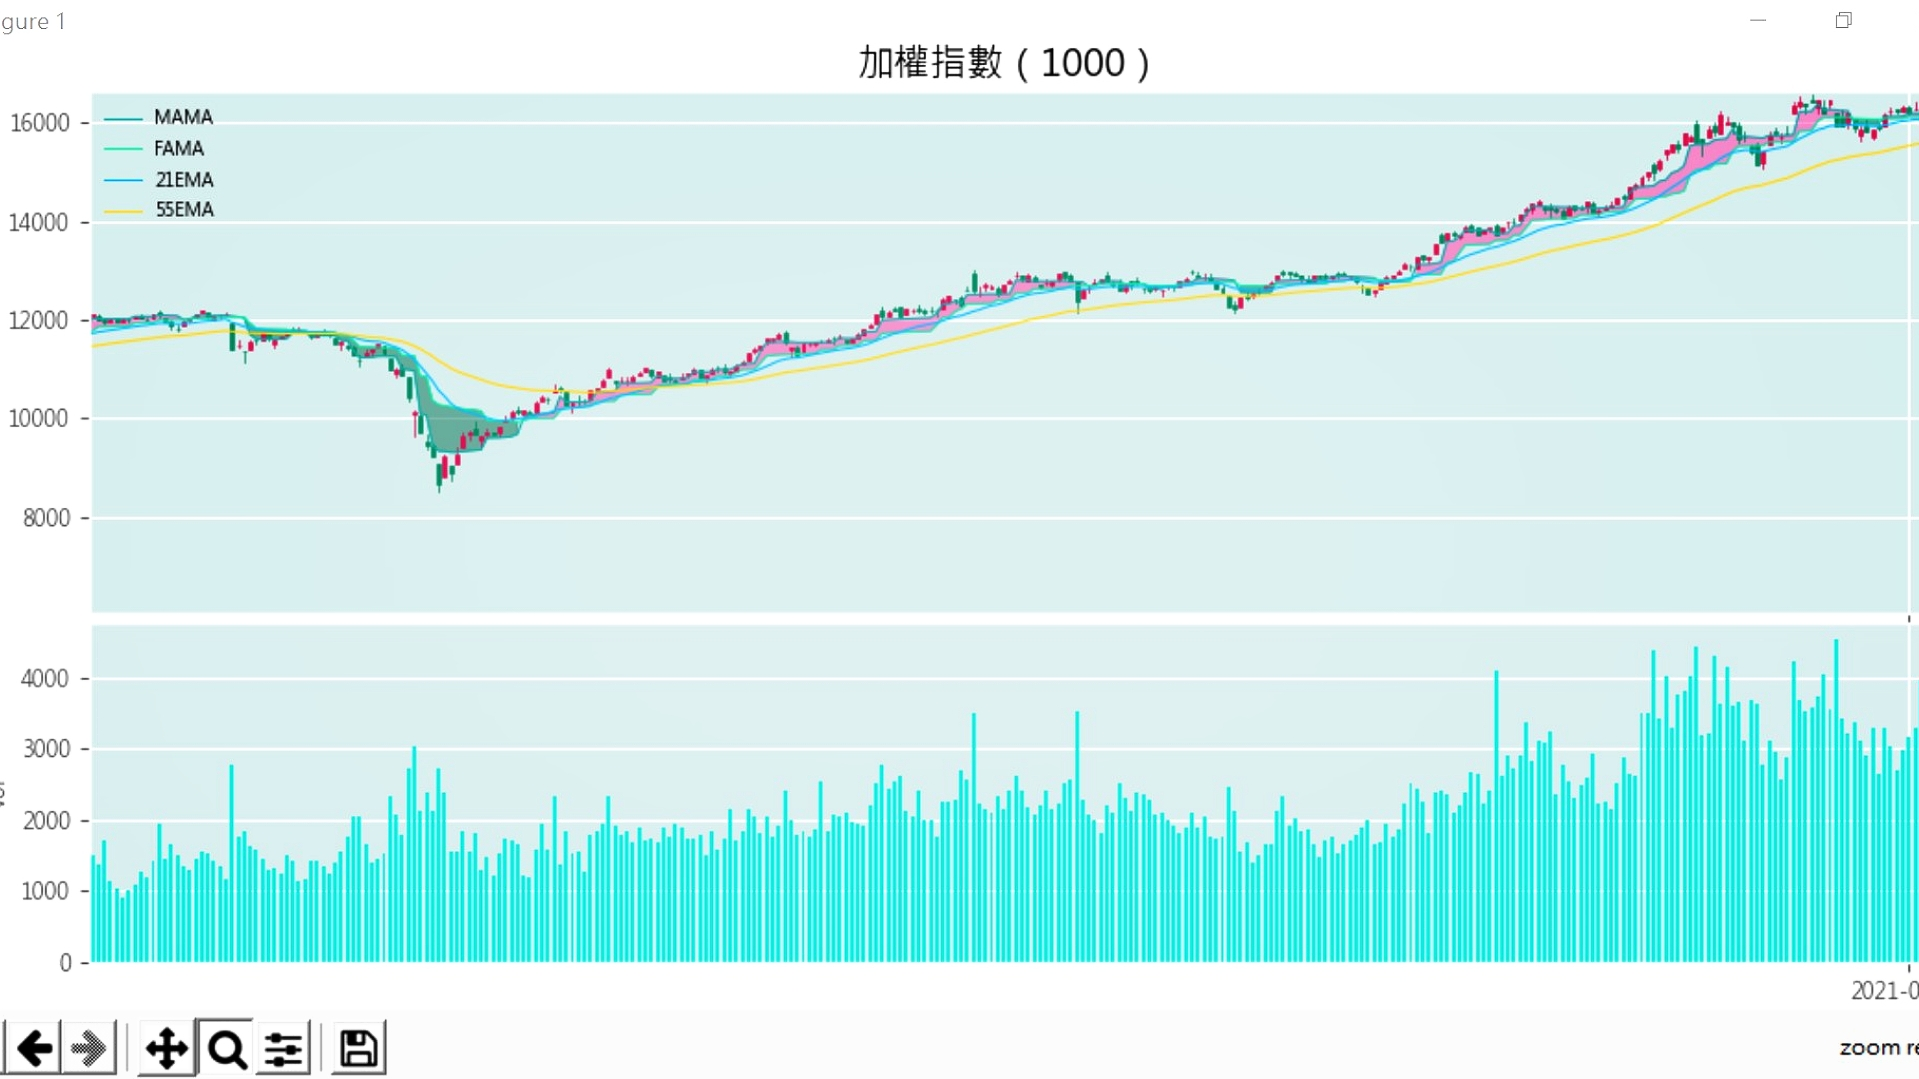 Daily price data for Taiwan stocks market index from National Taiwan University in Economy (Taiwan)